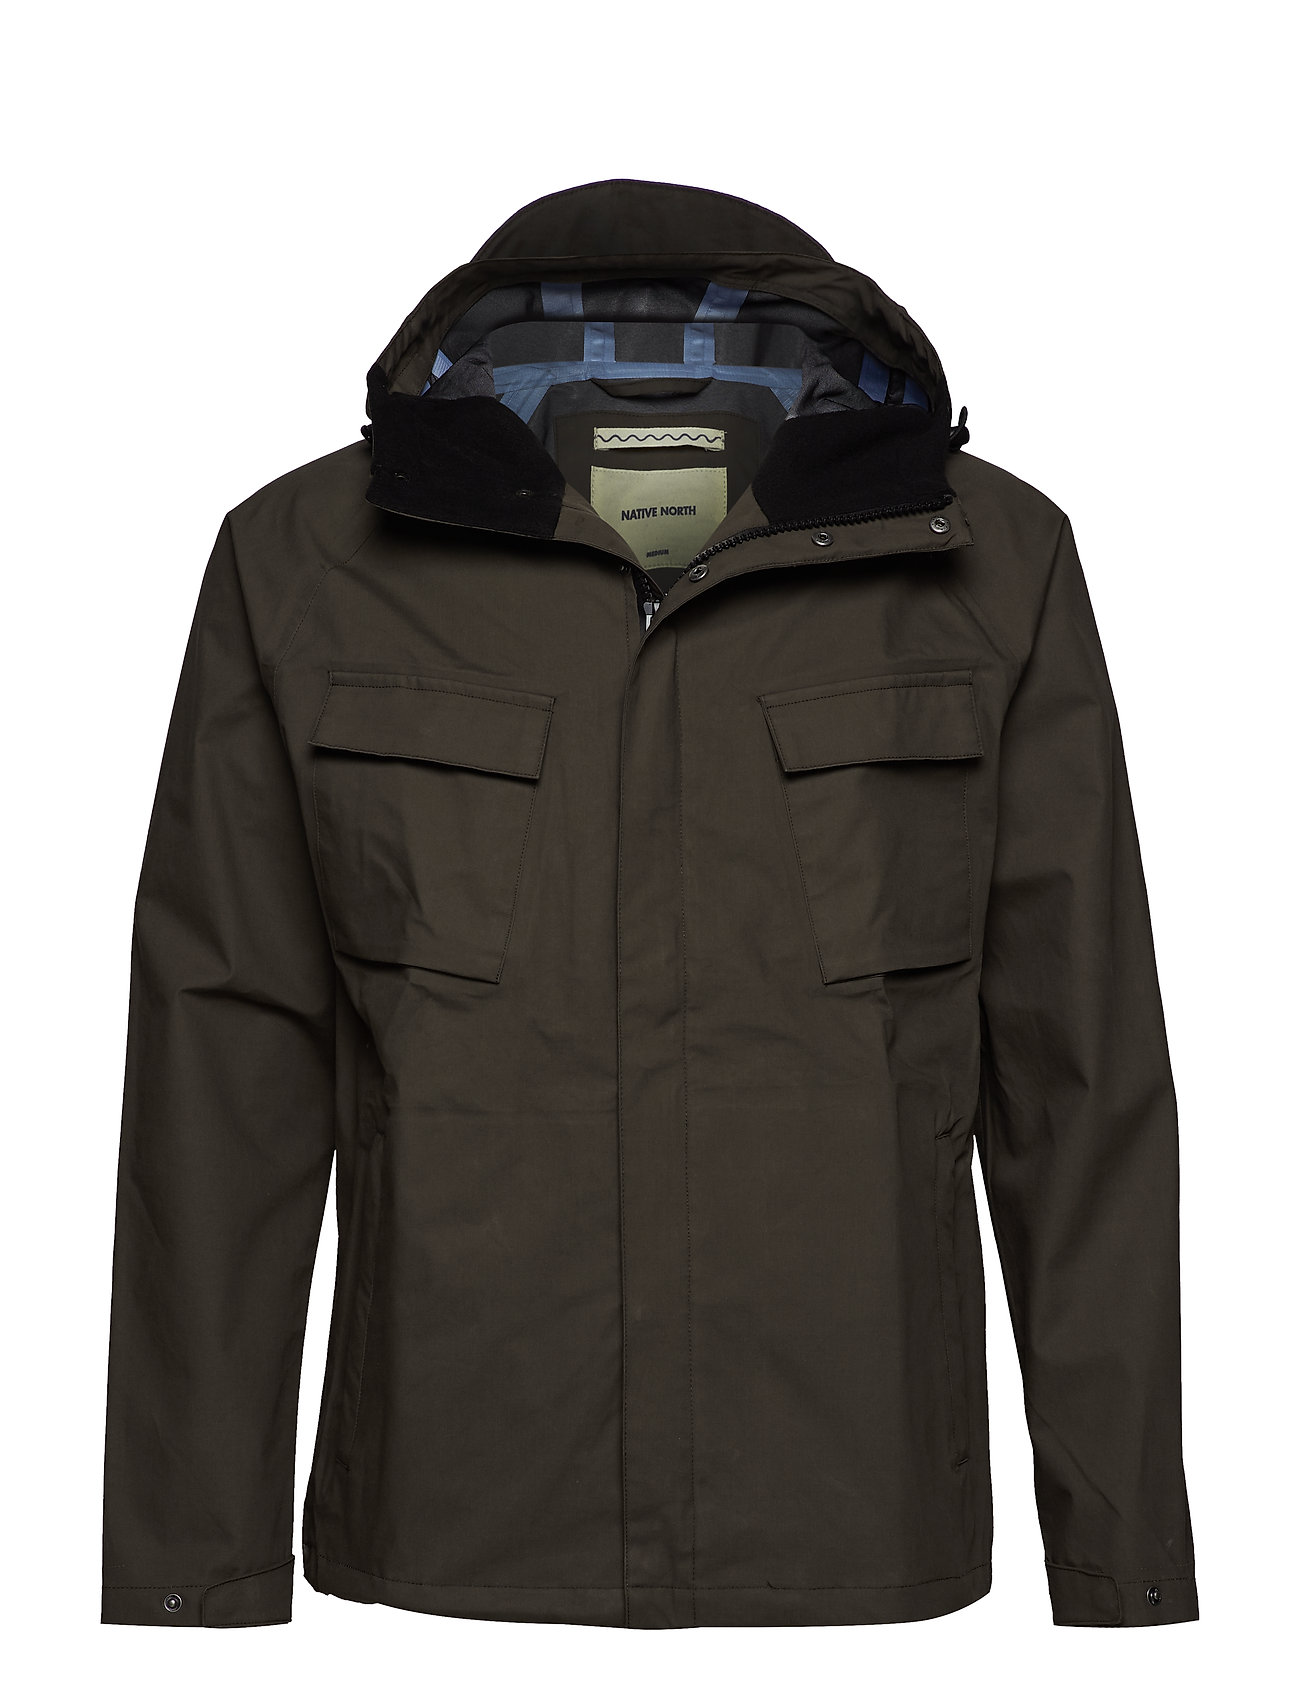 Native North TECHNICAL BASE JACKET 2.0 - BROWN